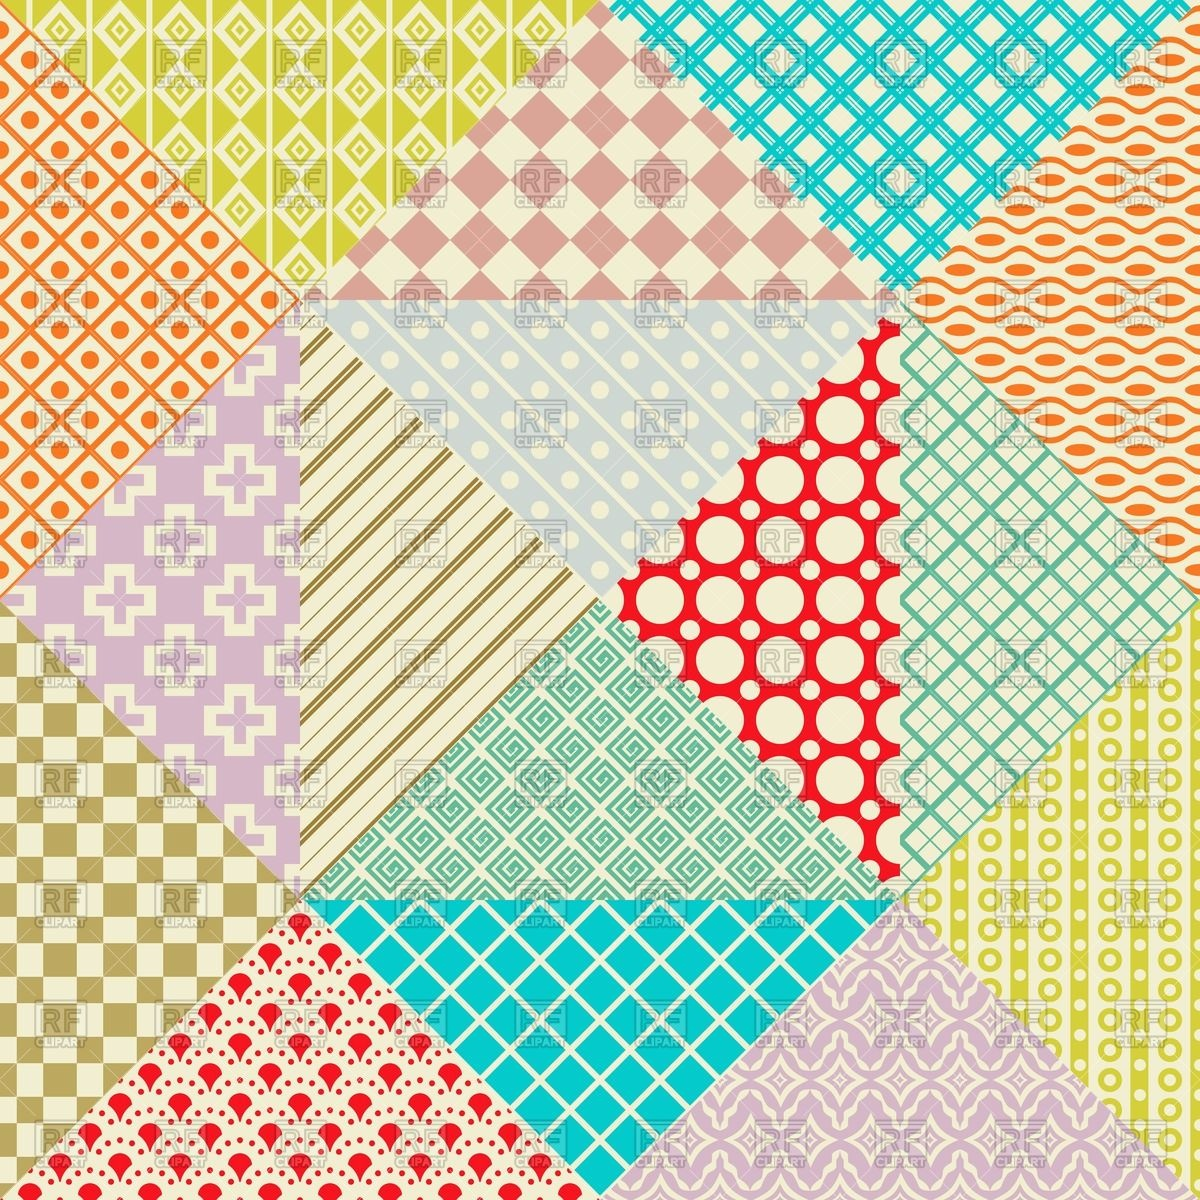 Retro patchwork seamless pattern Vector Image #64115.